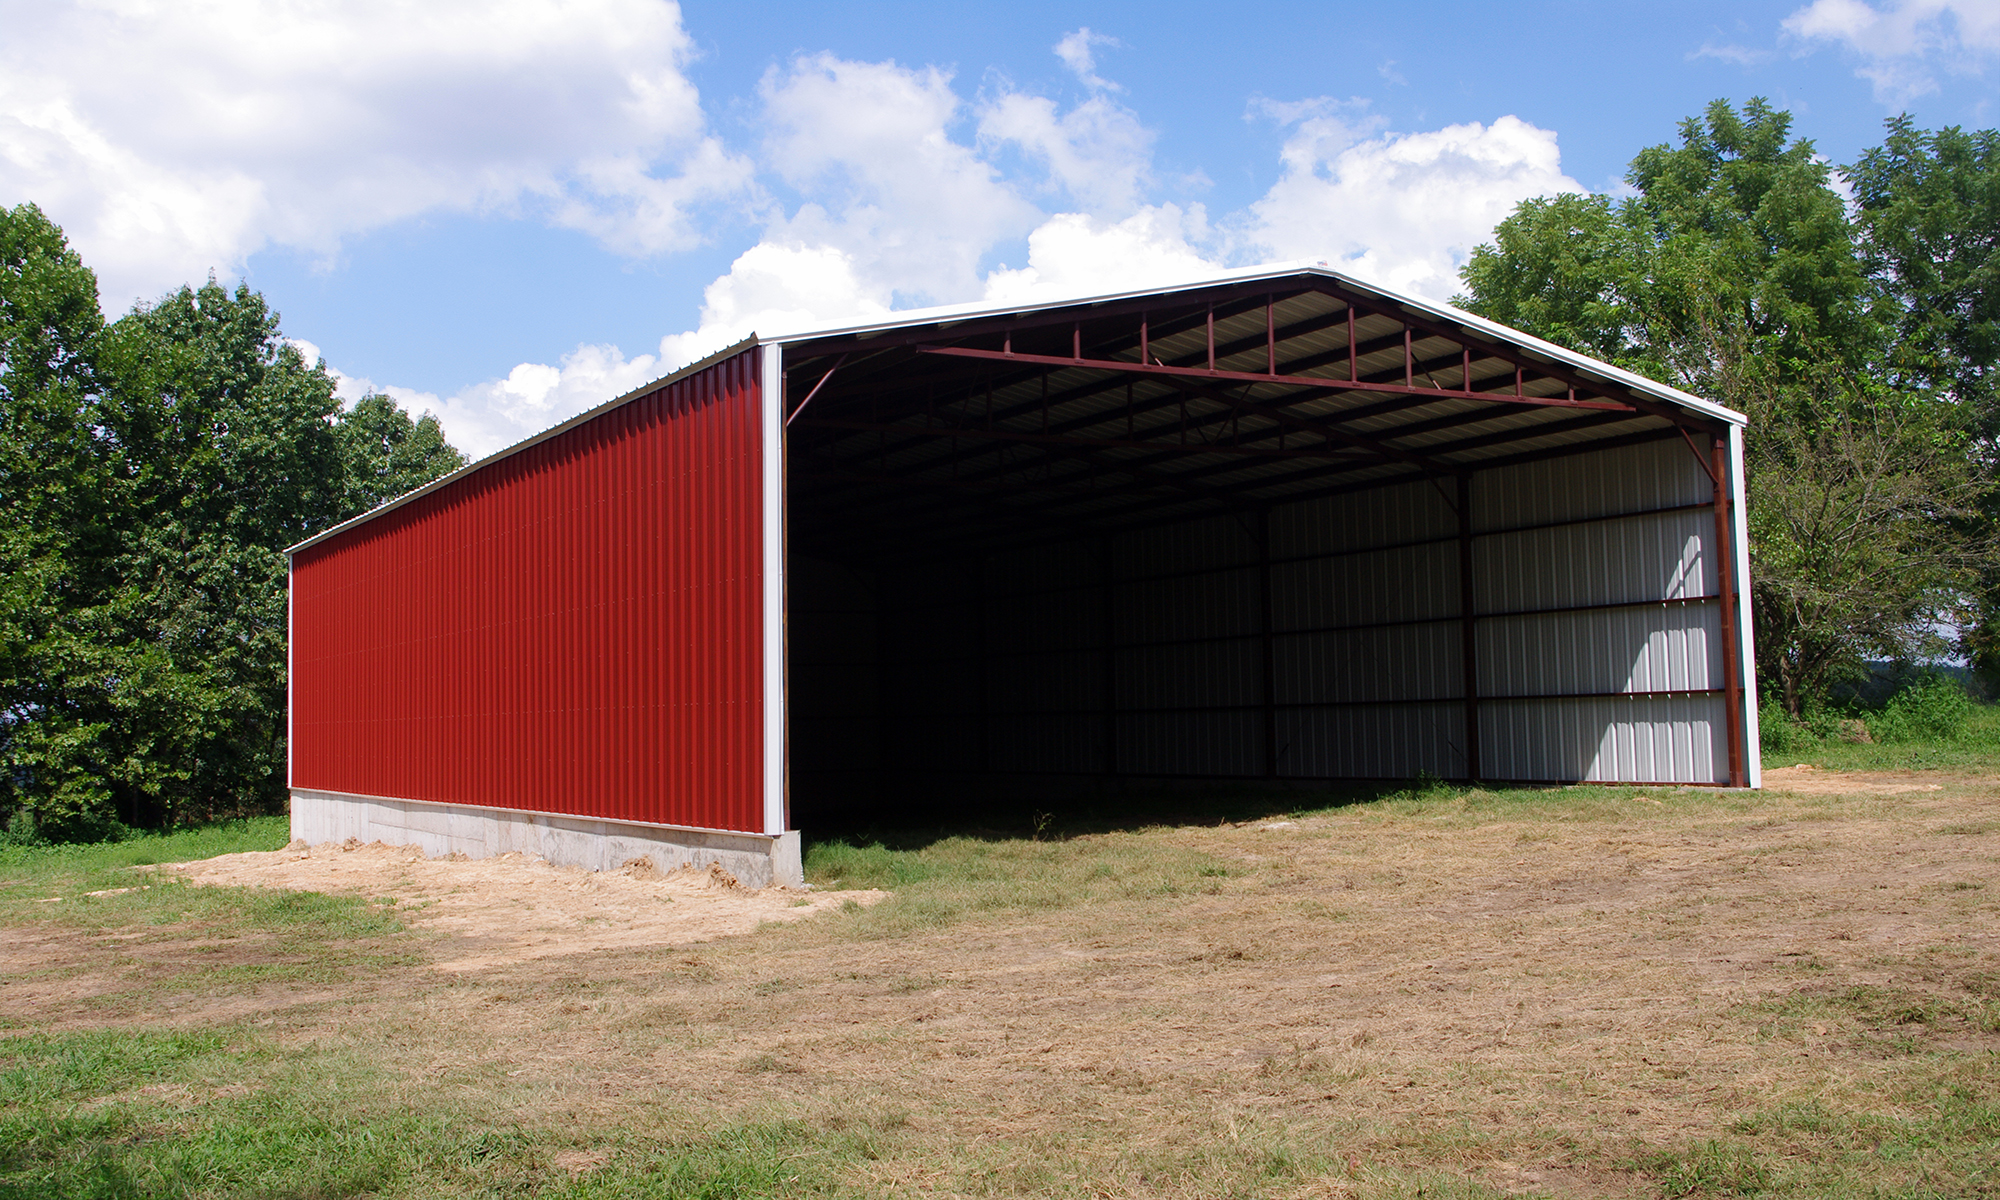 Global steel buildings diy steel building kits global steel buildings solutioingenieria Choice Image